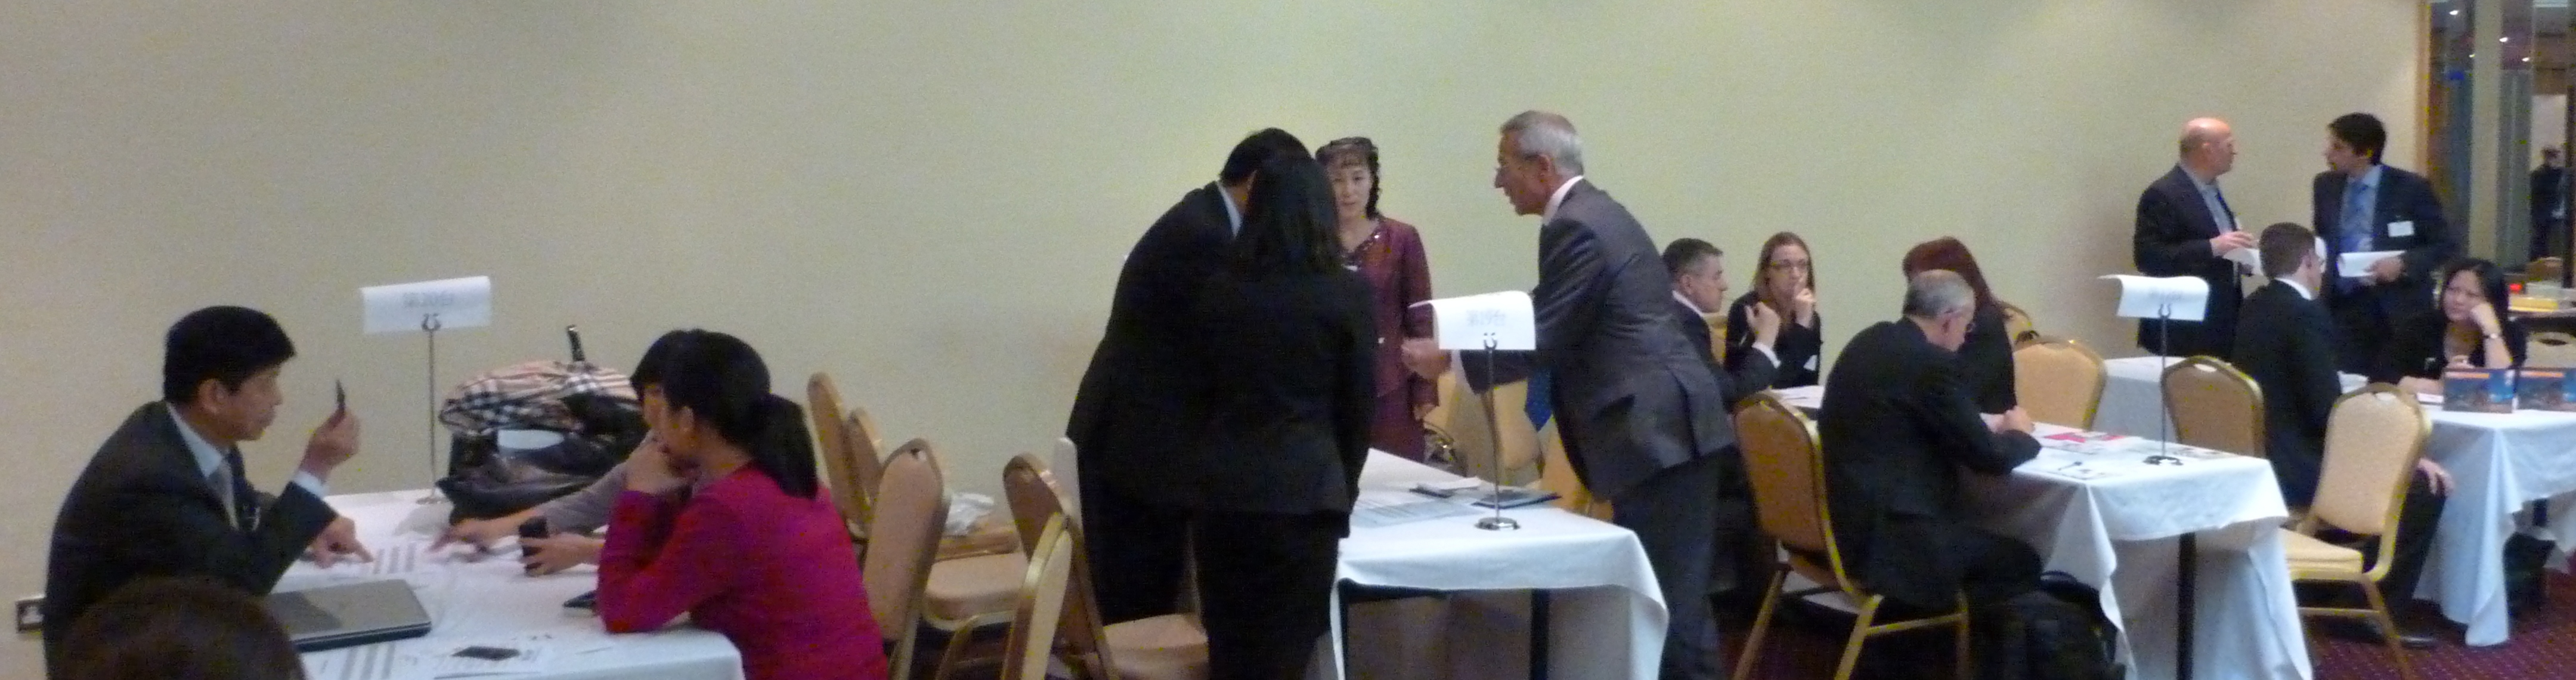 from Brennan business matchmaking meeting